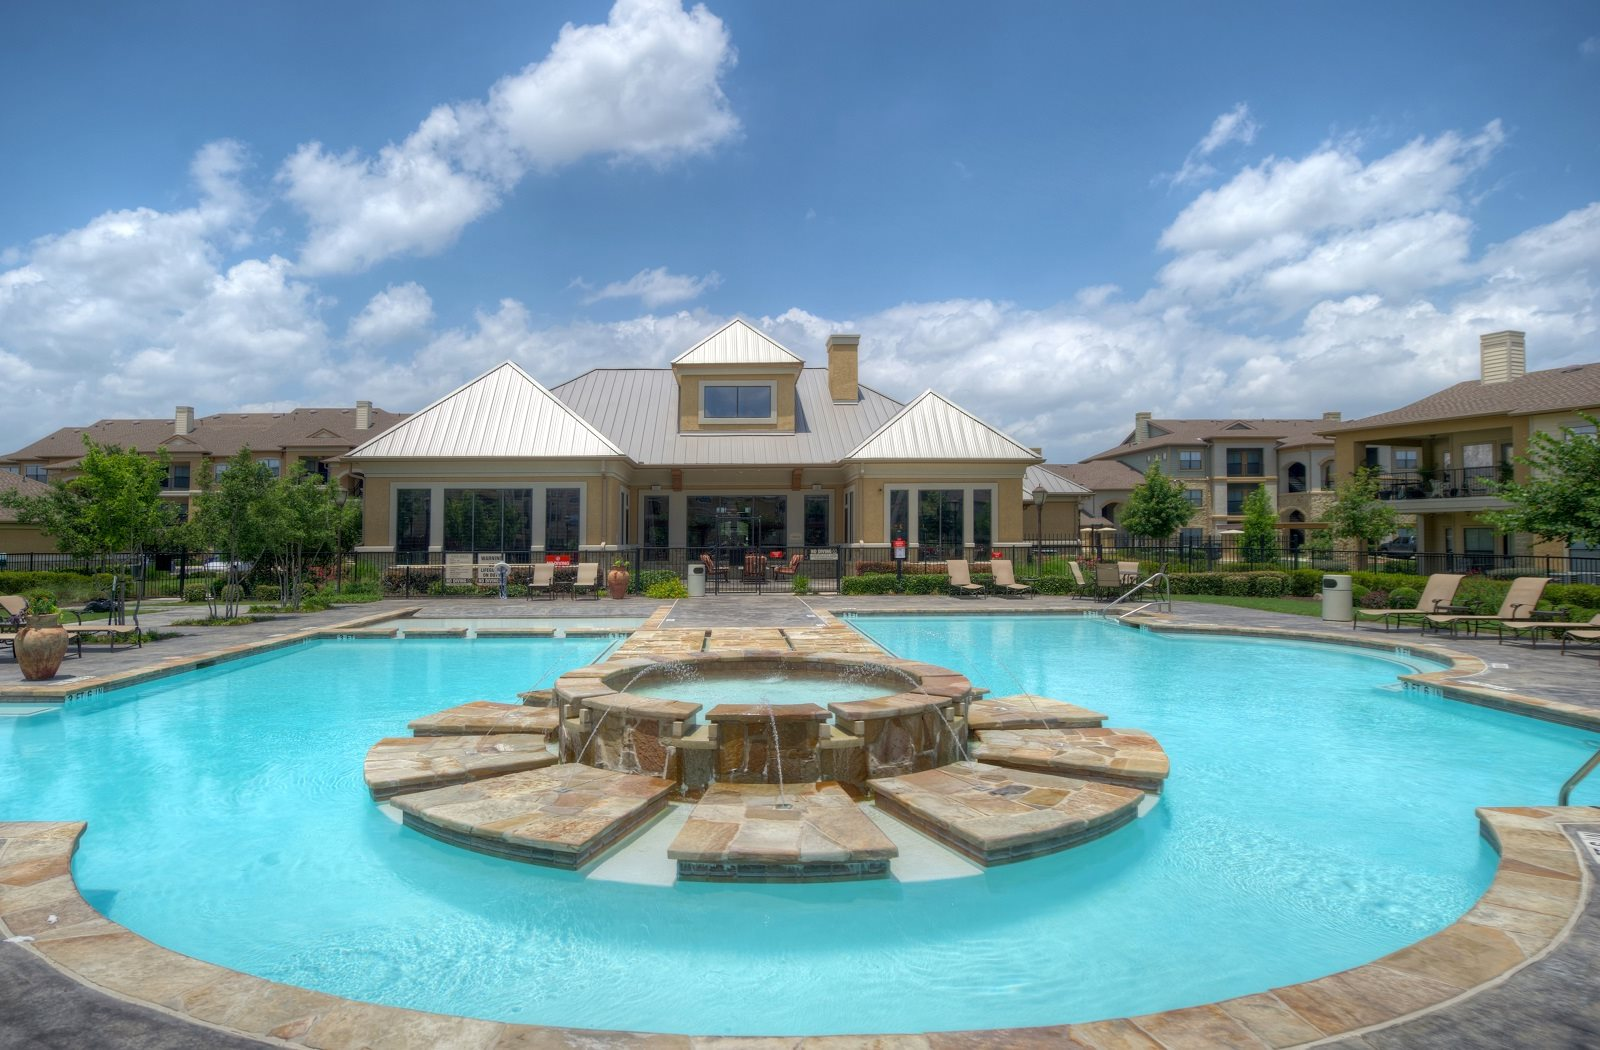 Pool at Palm Valley Apartments, Round Rock, Texas